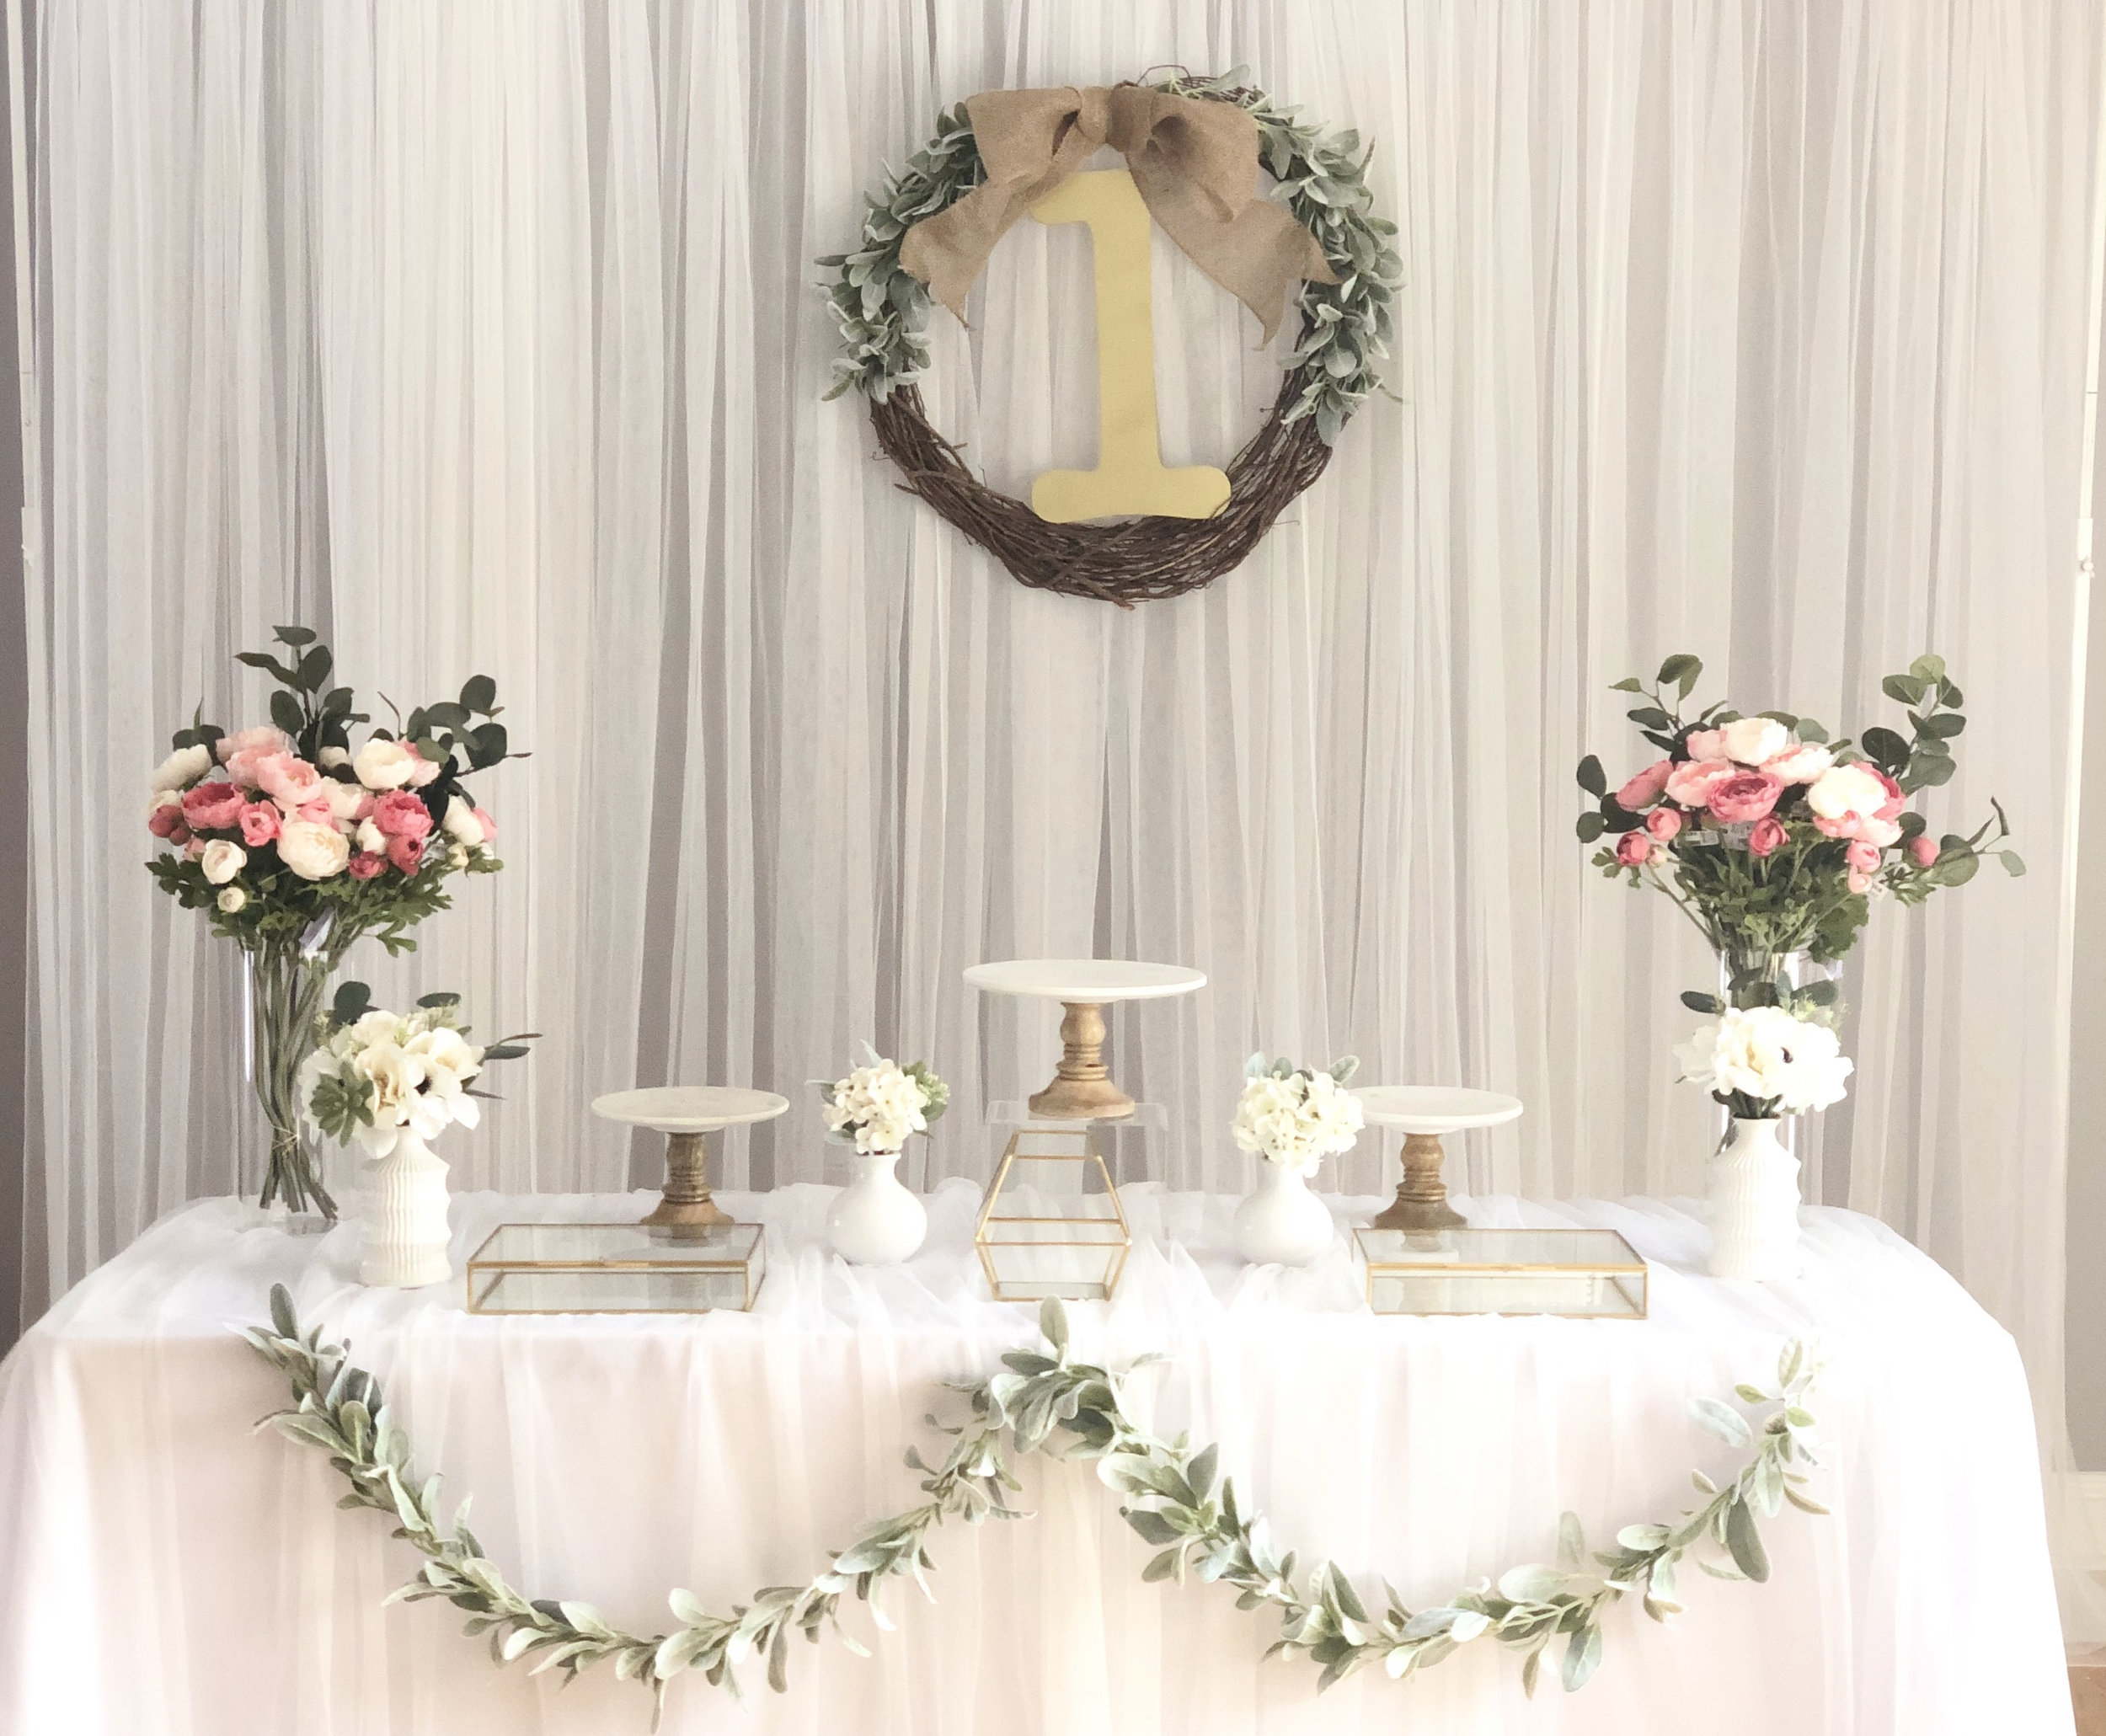 simple pink - Included : backdrop, 1st Birthday hanging wreath, 3 cake stands, silk flowers and vases, Gold glass boxes.상품 구성: 1st Birthday 리스, 케익 스탠드 3개, 조화 꽃 & 꽃병, 작은 꽃 & 꽃병 4개, 골드 박스 3개.Plus, MODERN DOLJABI TABLE & PHOTO TABLE